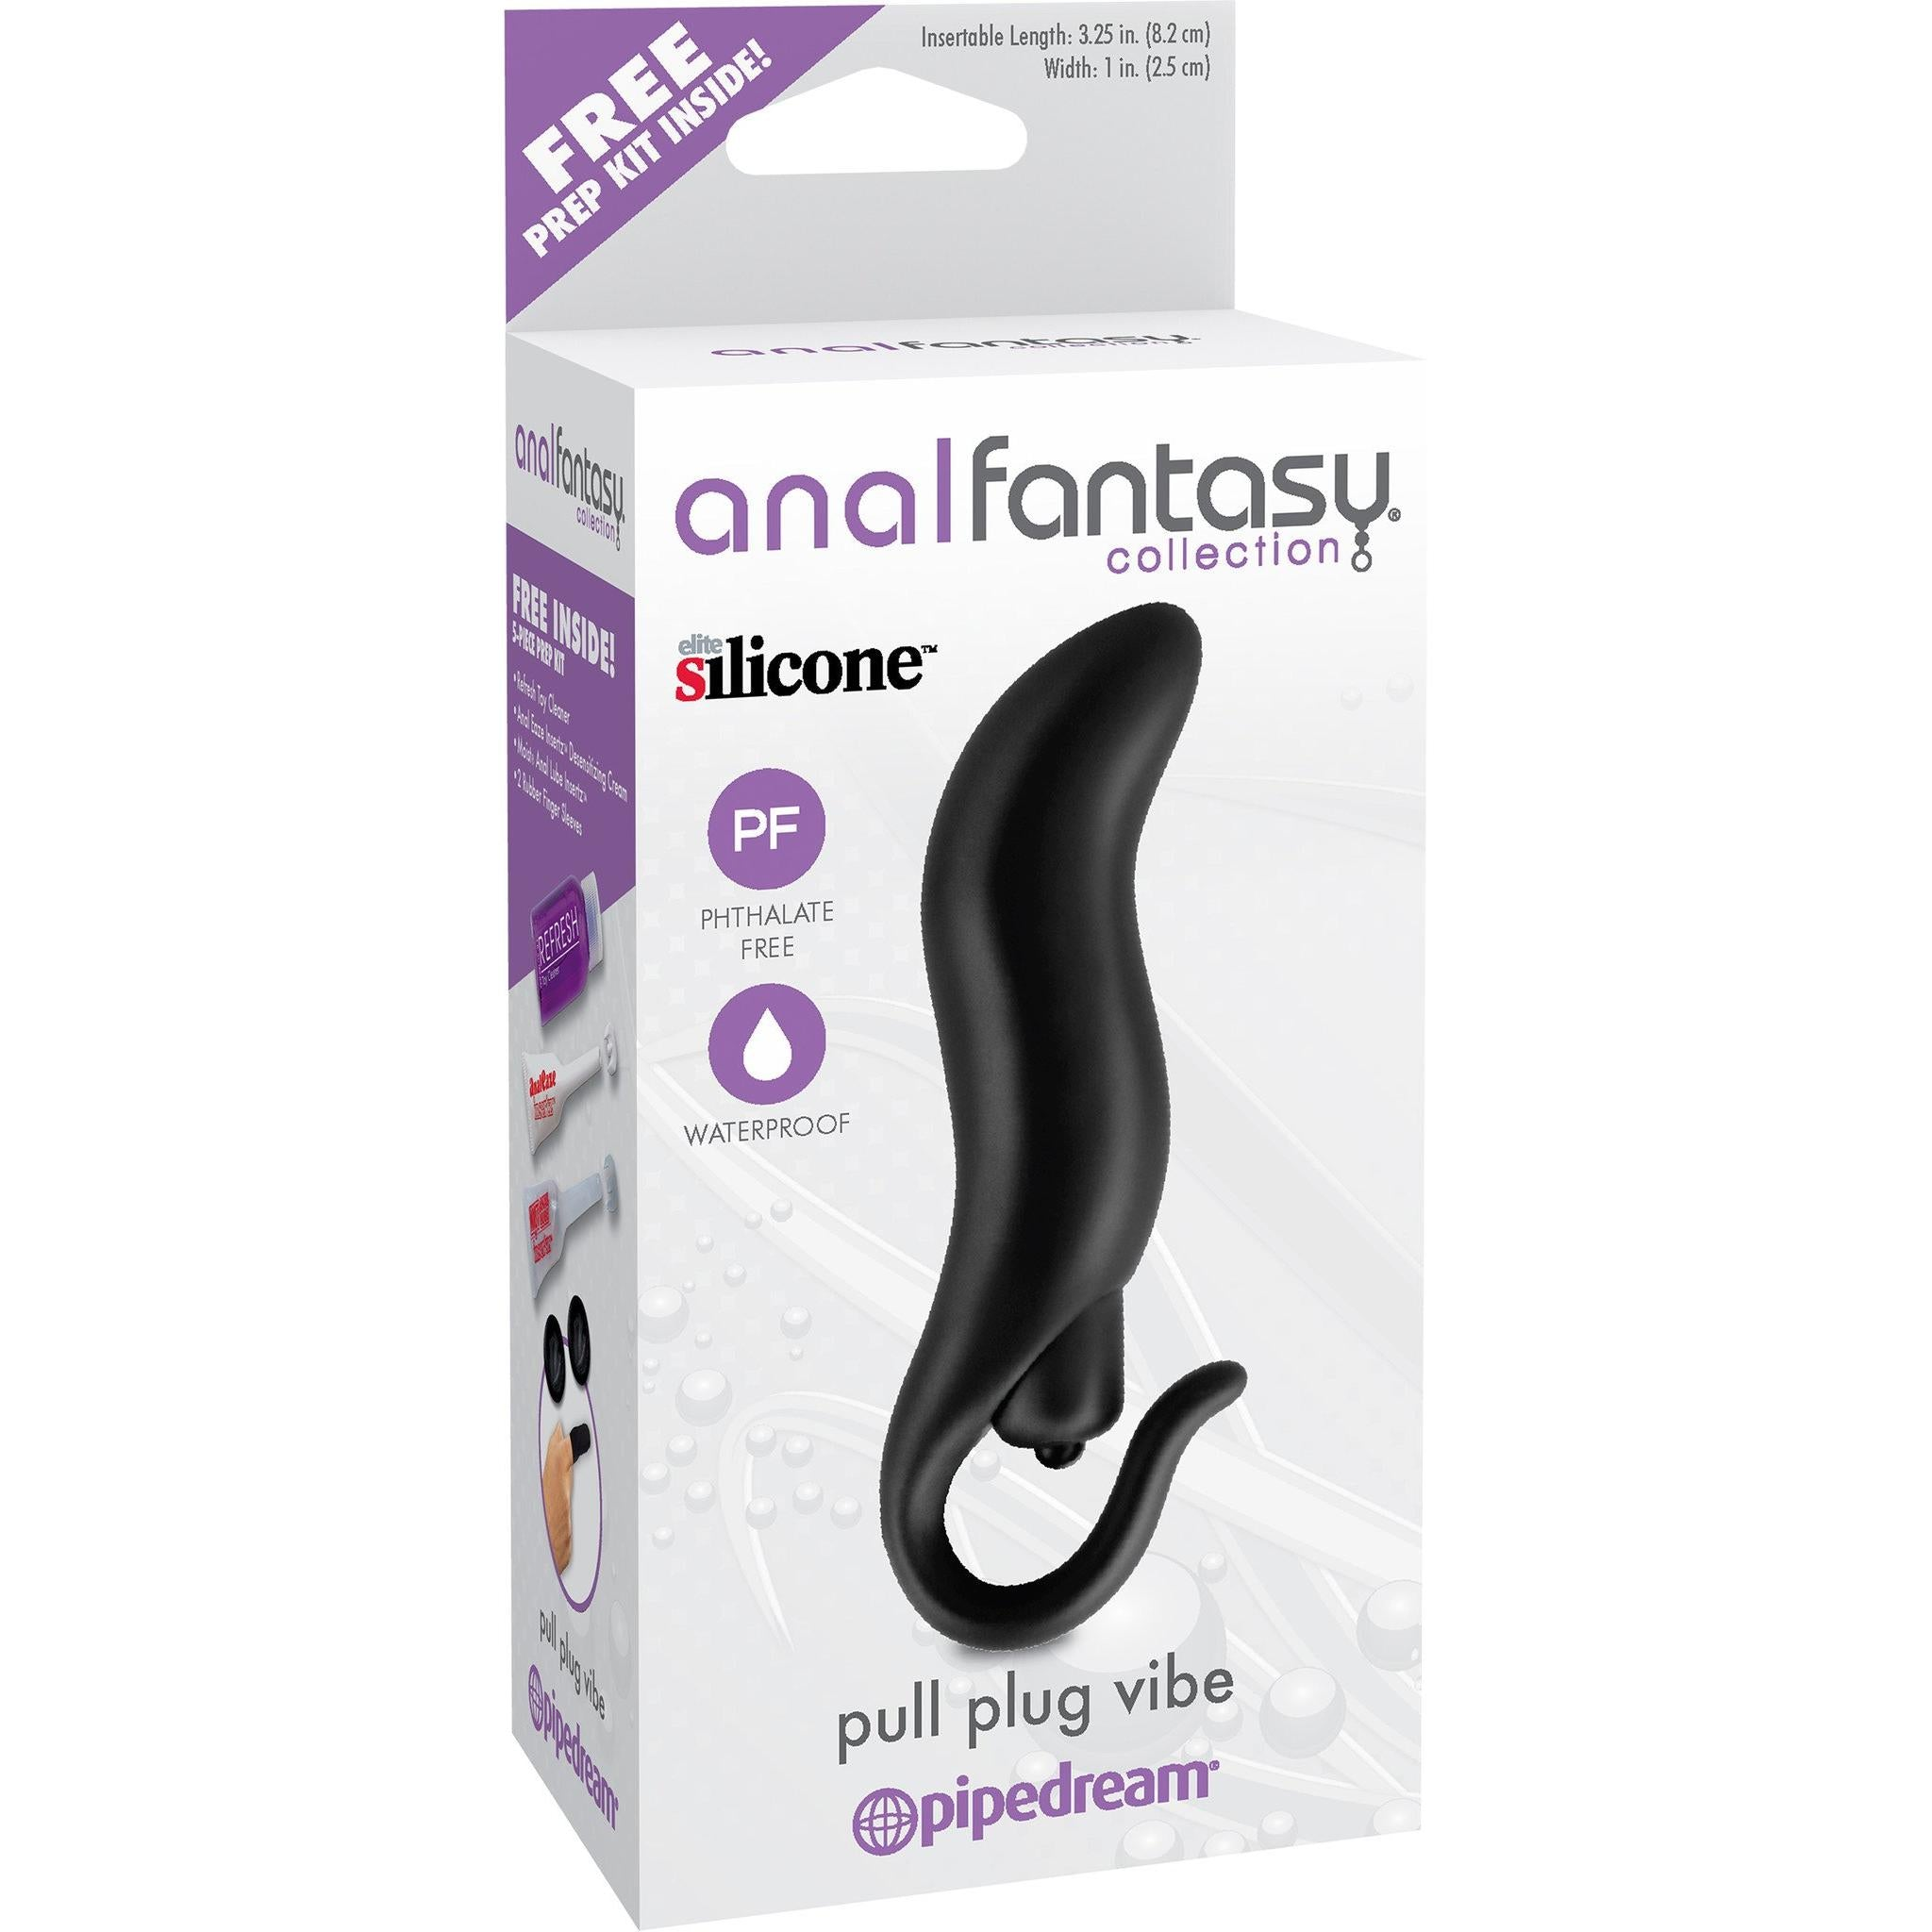 Anal Fantasy Pull Plug Vibe - Includes FREE 5-Piece Prep Kit - Gay Men's Sex Toys - Adam's Toy Box